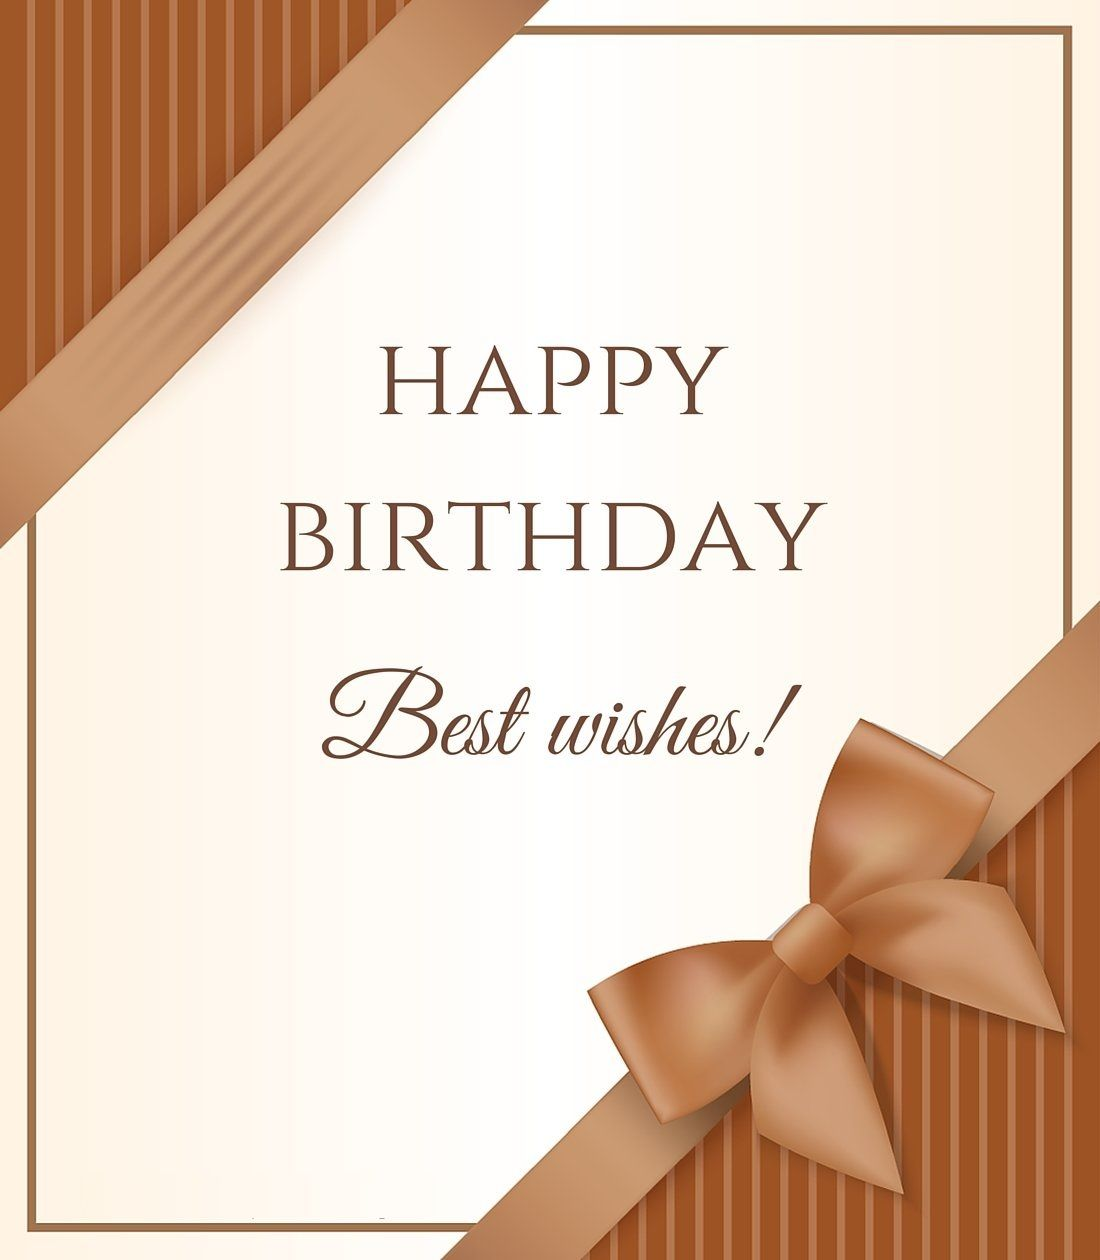 Professional birthday wishes cumpleaos pinterest birthday professional birthday wishes m4hsunfo